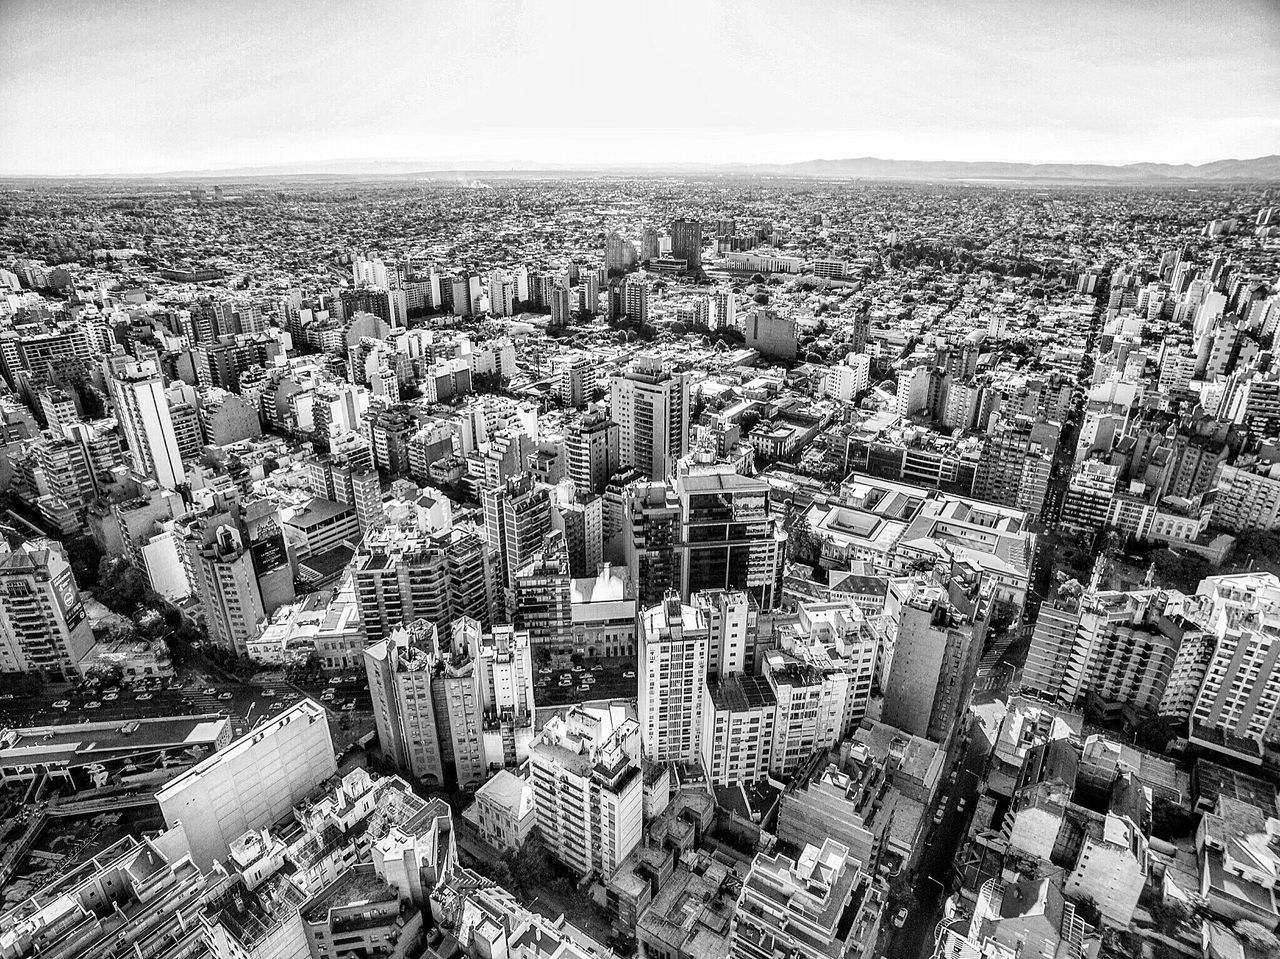 Cityscape Skyscraper Architecture Building Exterior City Aerial View Crowded Development Modern Outdoors Downtown Travel Destinations Day Sky Architecture Steps Apartment No People Staircase